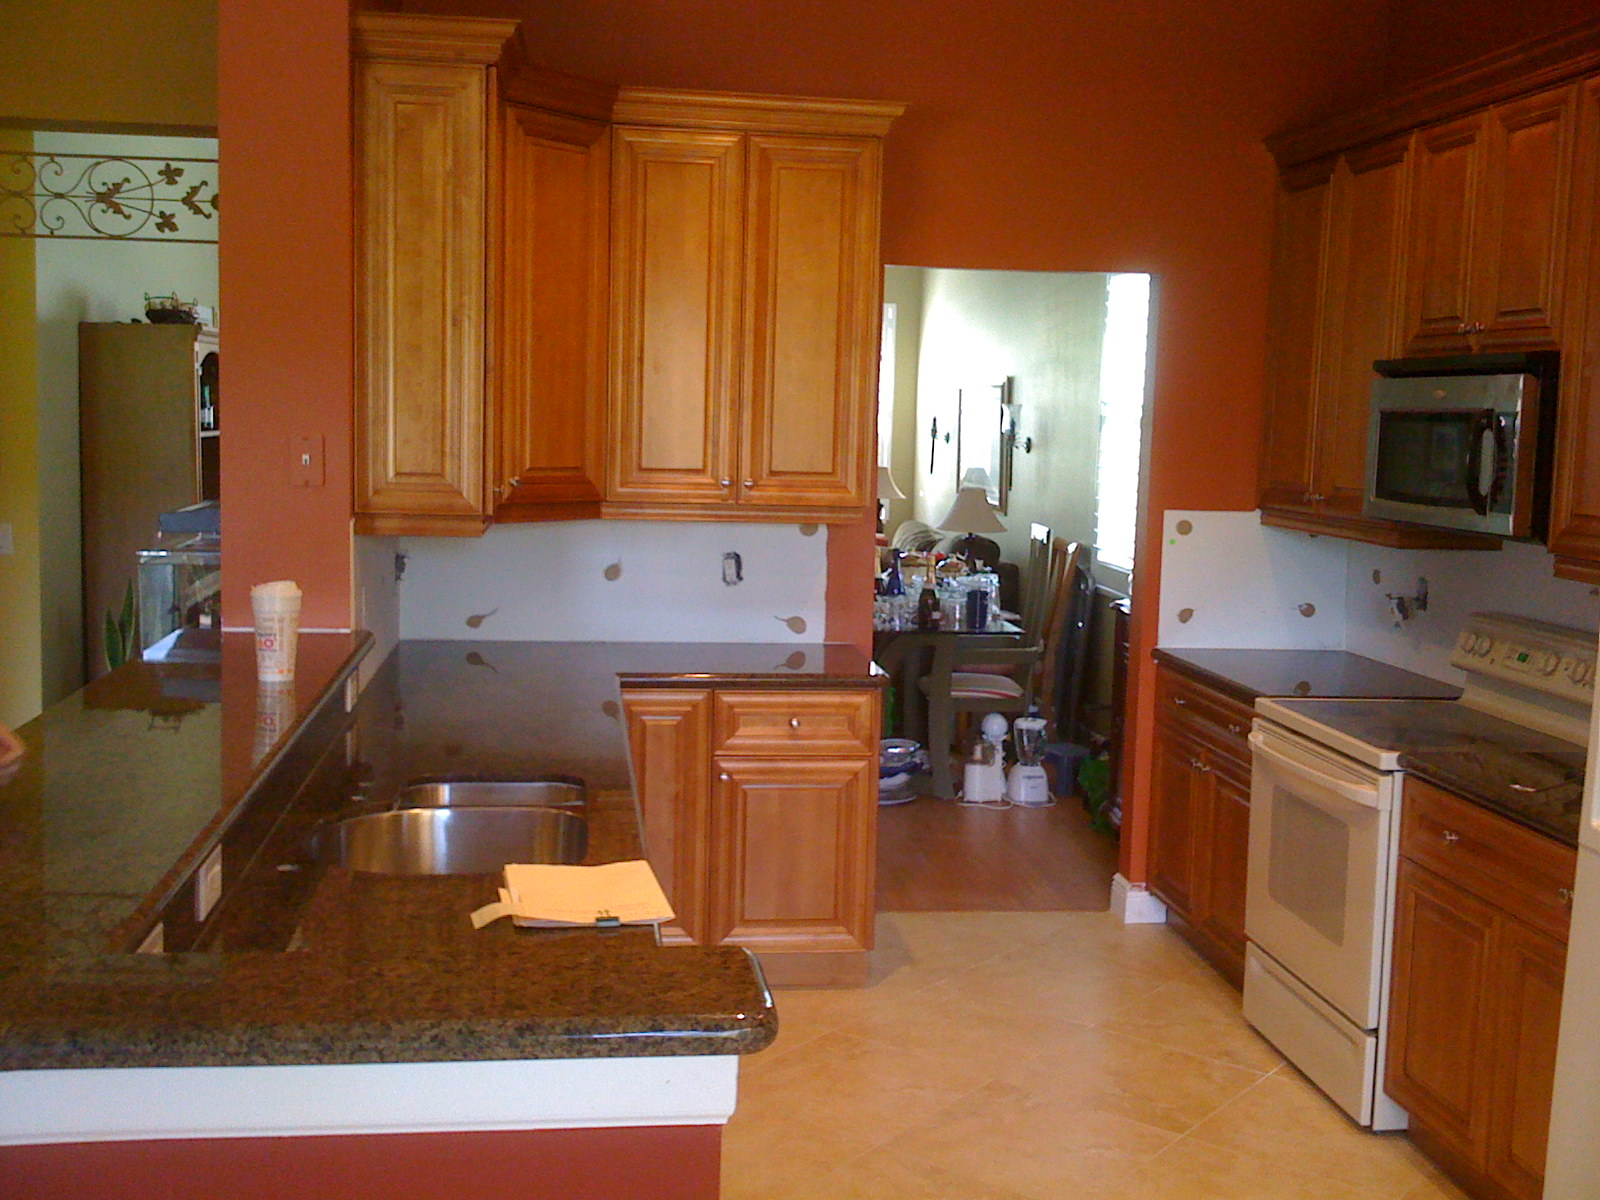 tops kitchen cabinets pompano how much do cost gallery and granite countertops